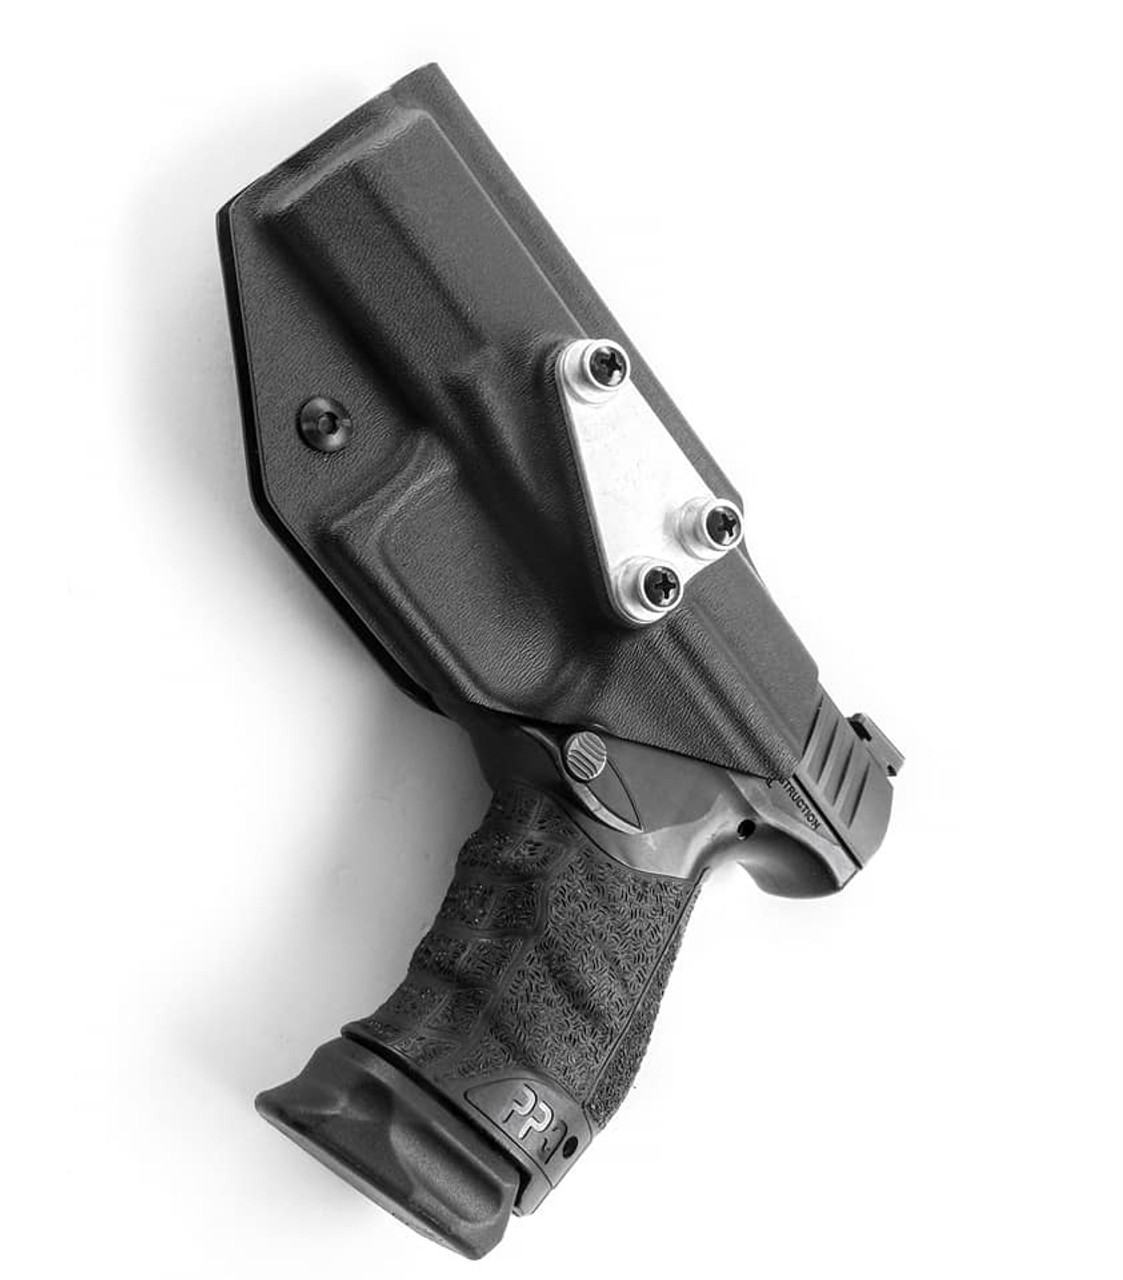 Walther PPQ 9/40 G-Code RTI Holster